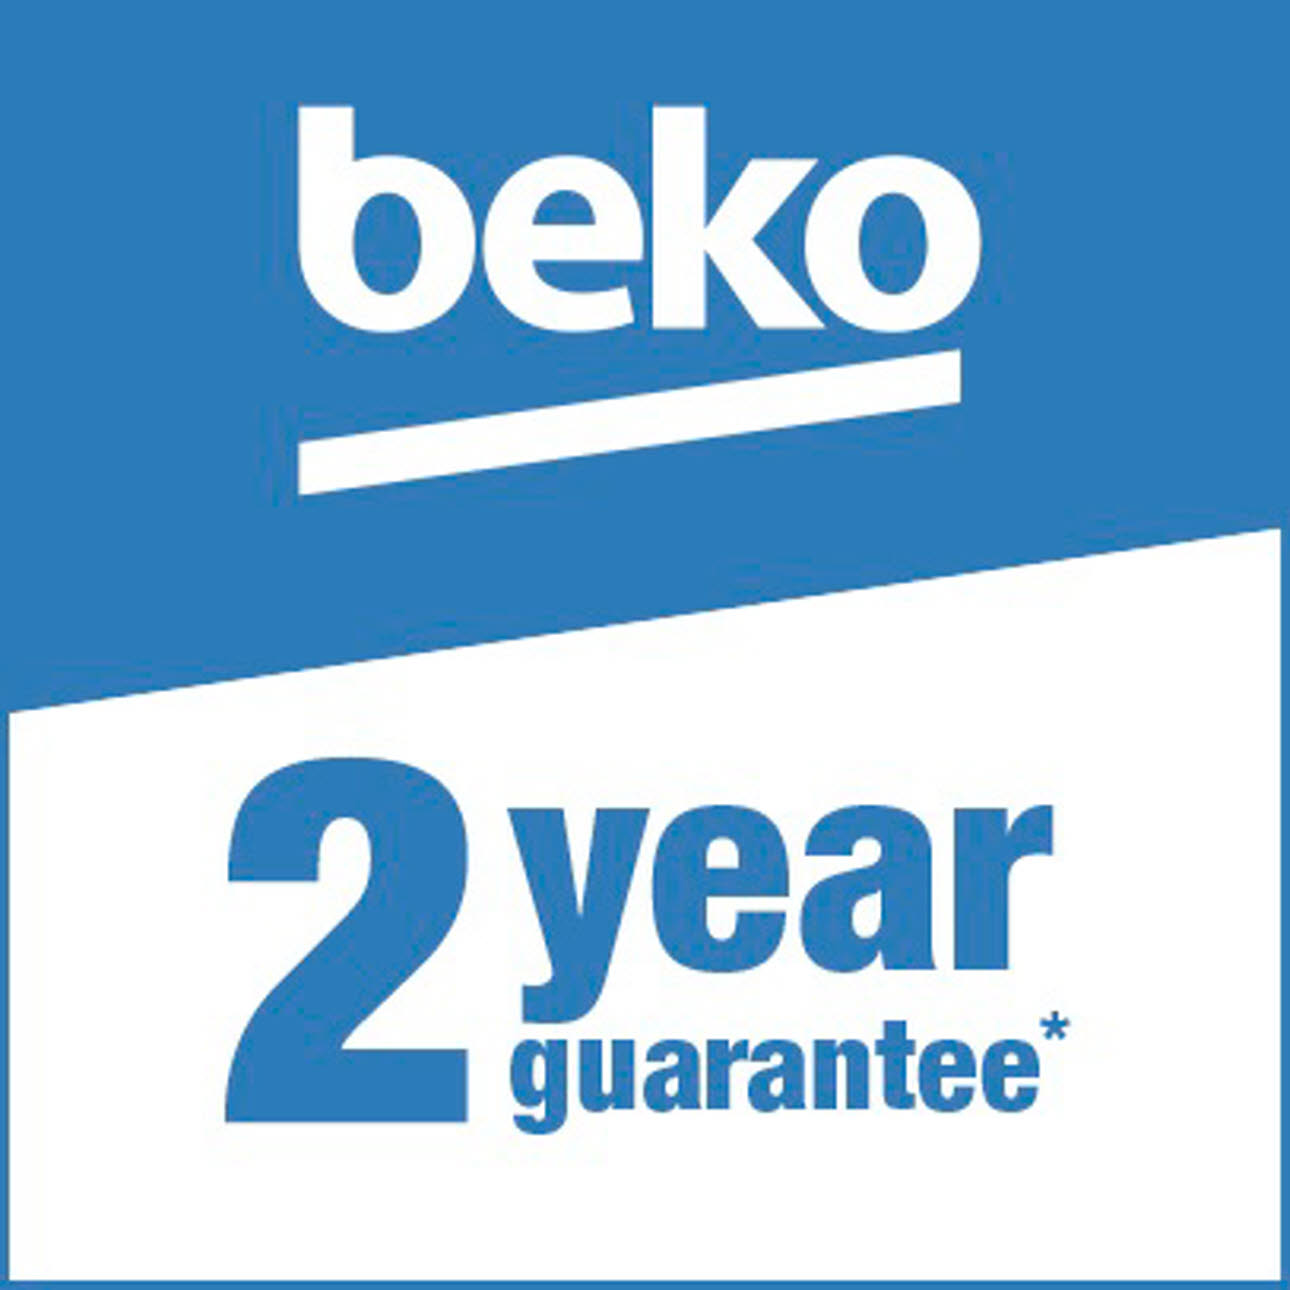 Beko 2 year guarantee logo